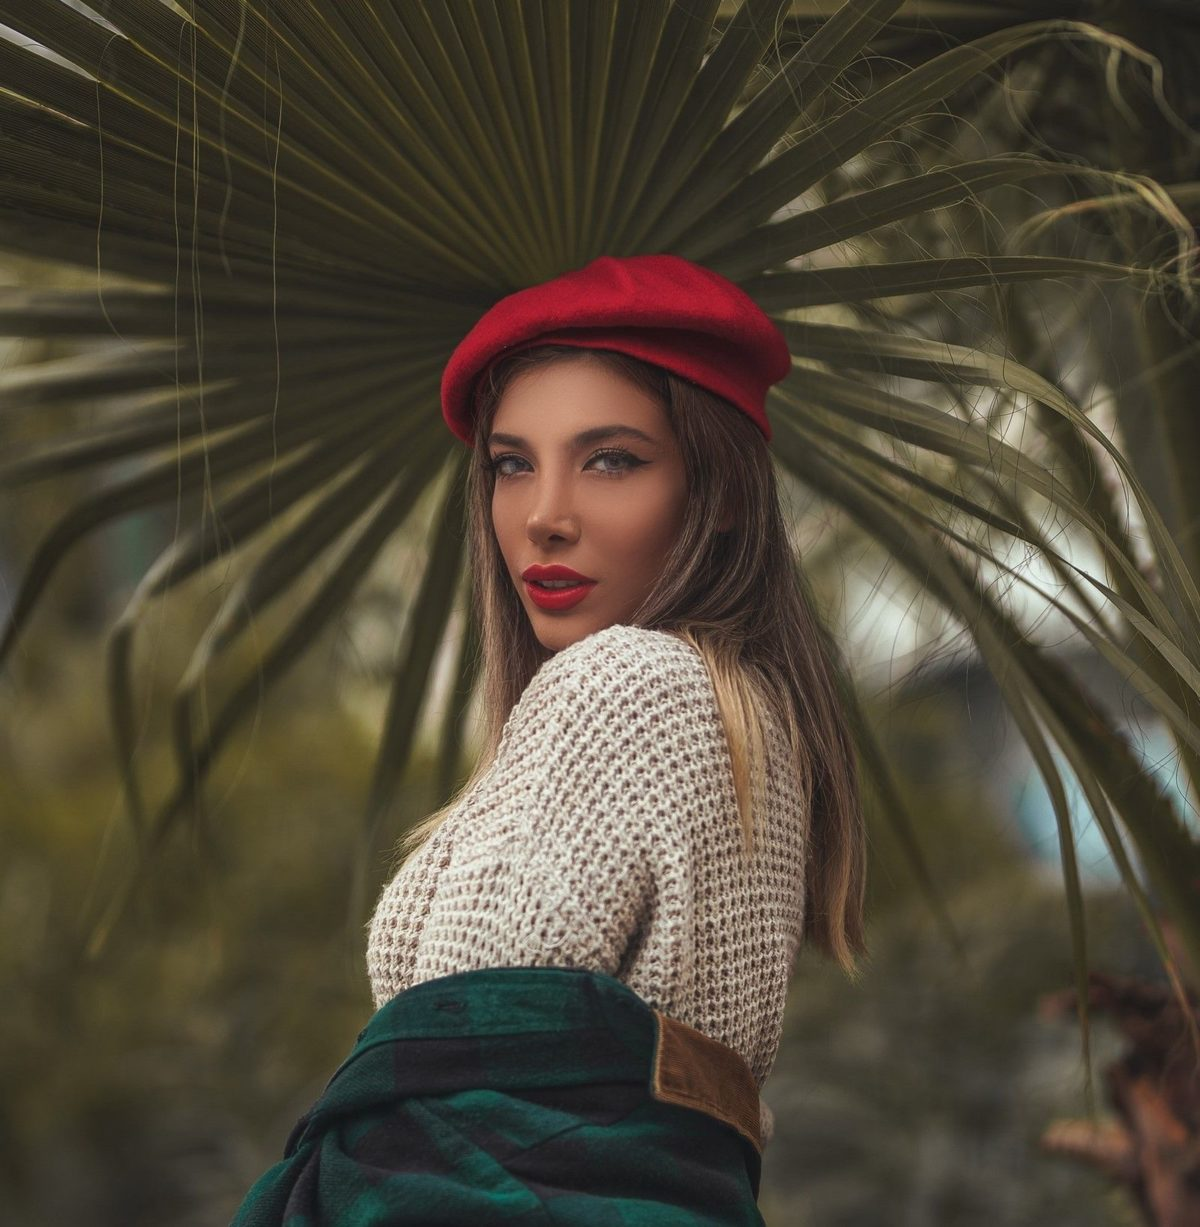 beanie alternatives for winter french beret stylish in red